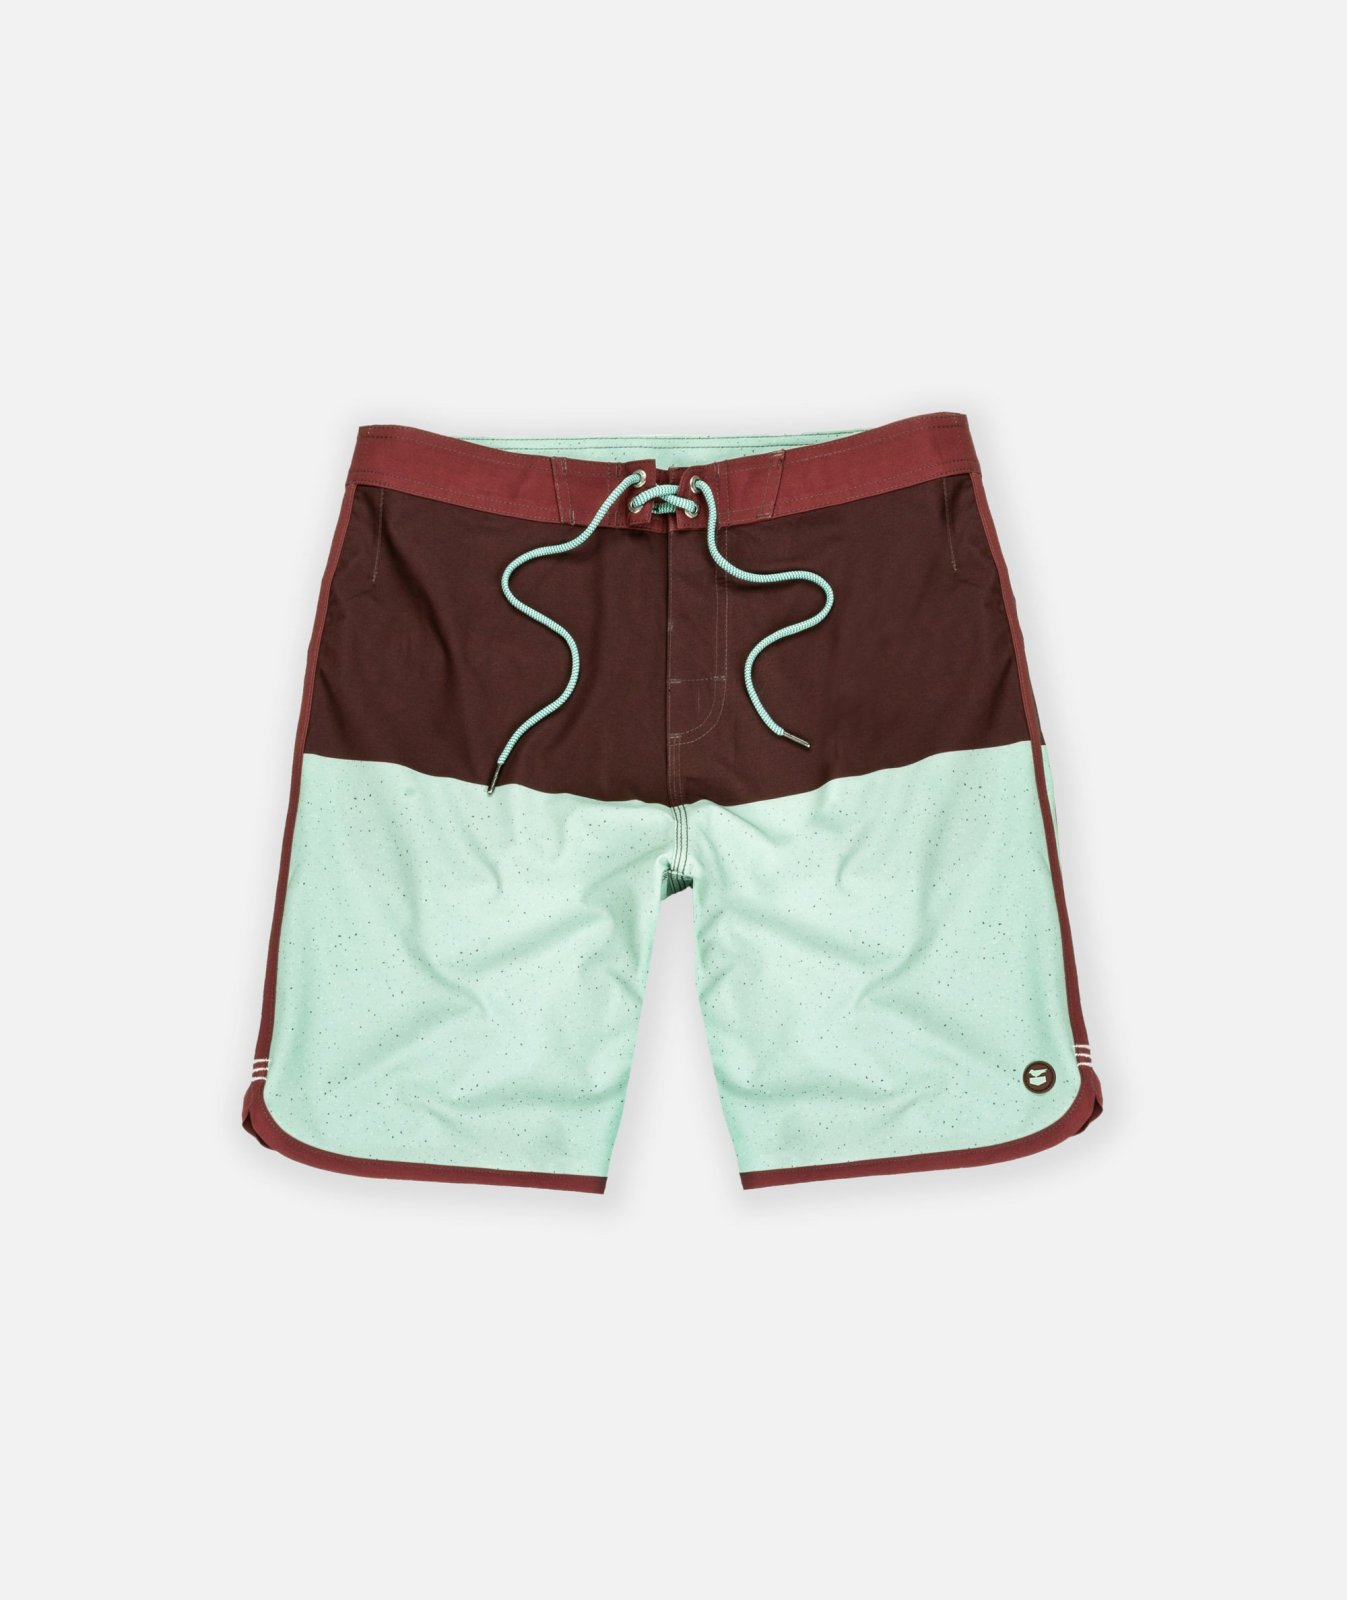 Gasparilla Pool Shorts